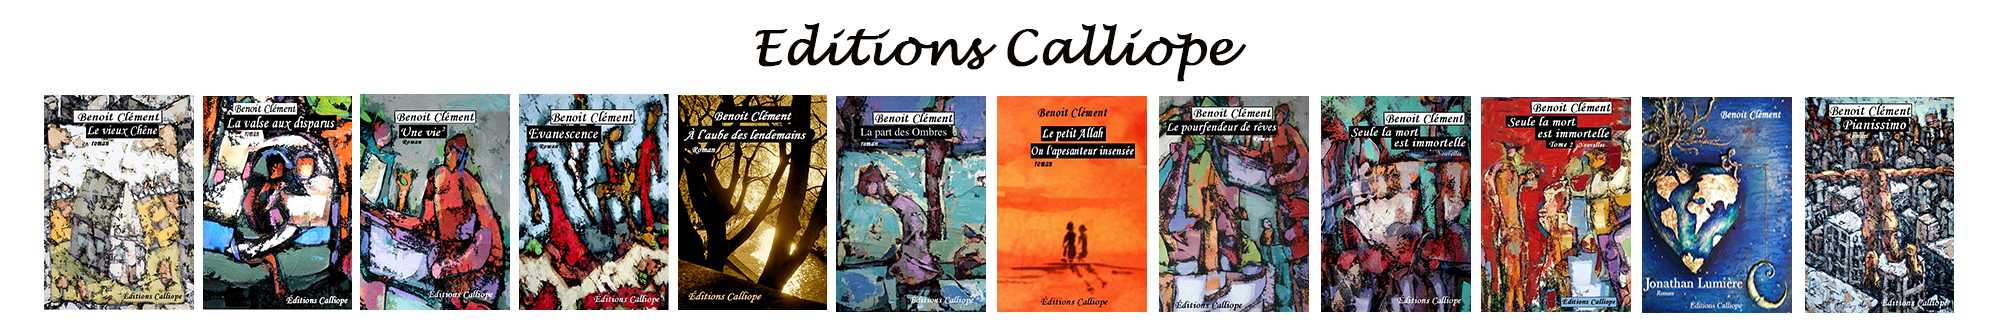 editions Calliope collection